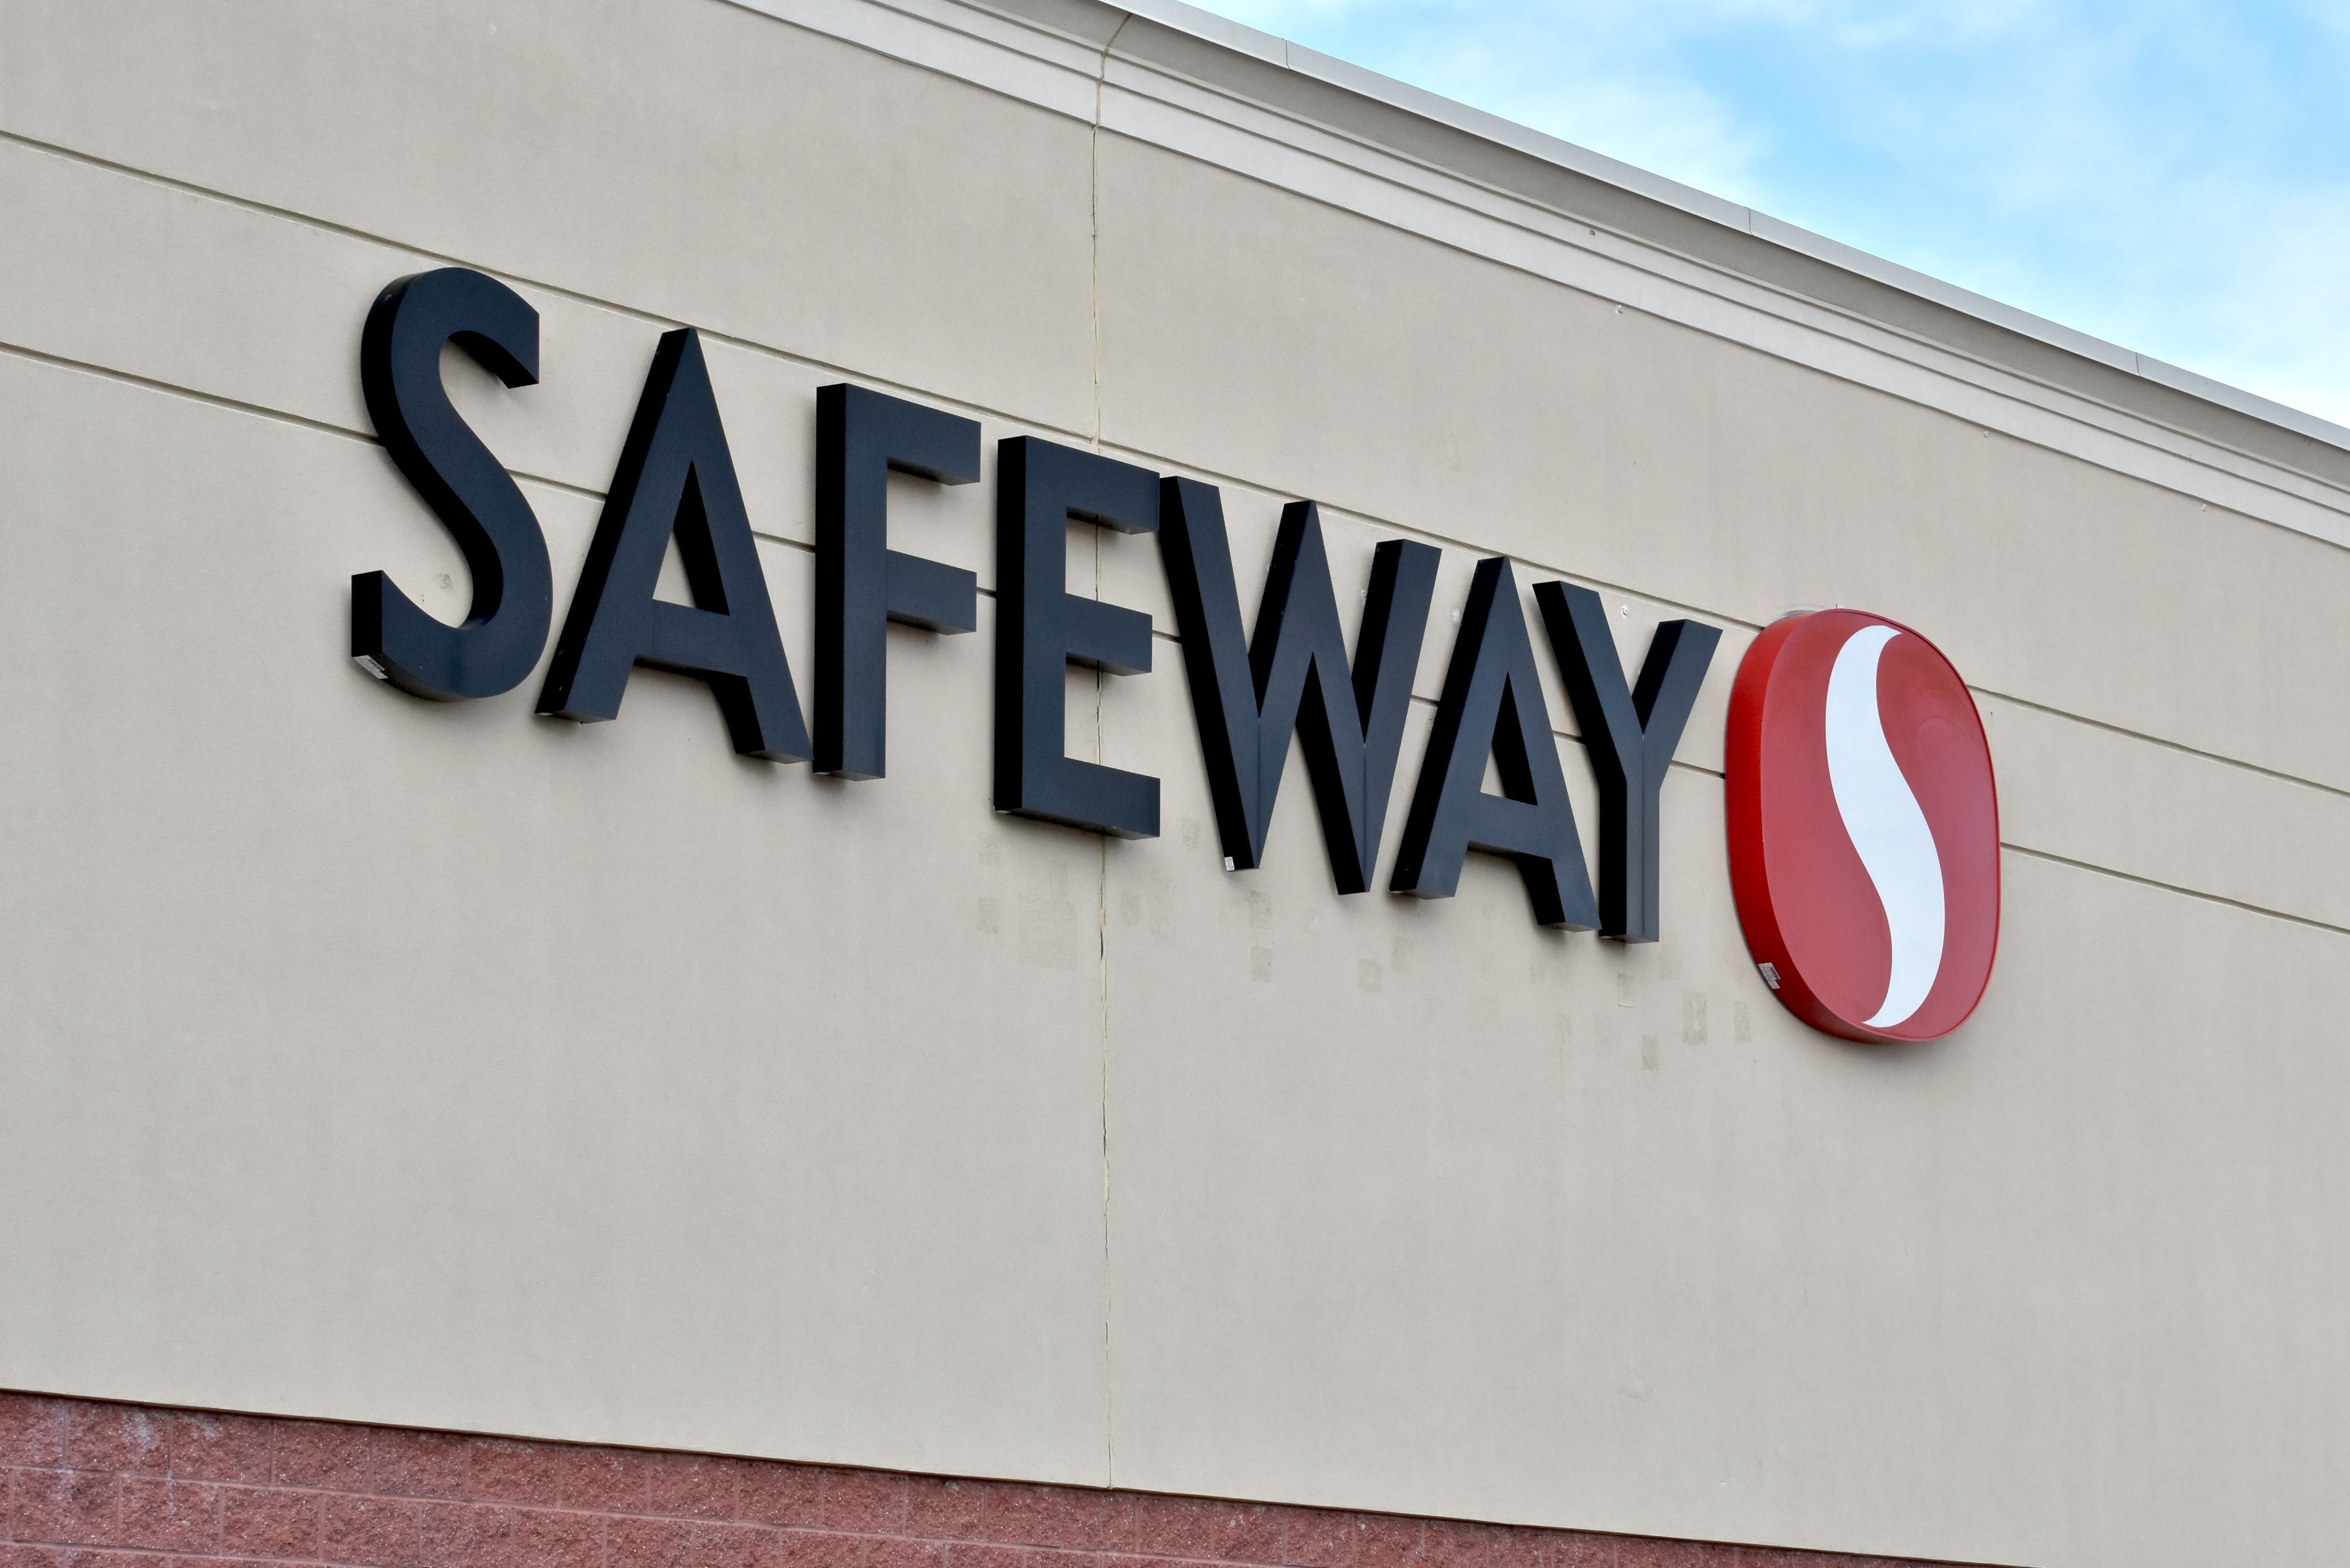 Numerous Safeway stores in Metro Vancouver slated for closure